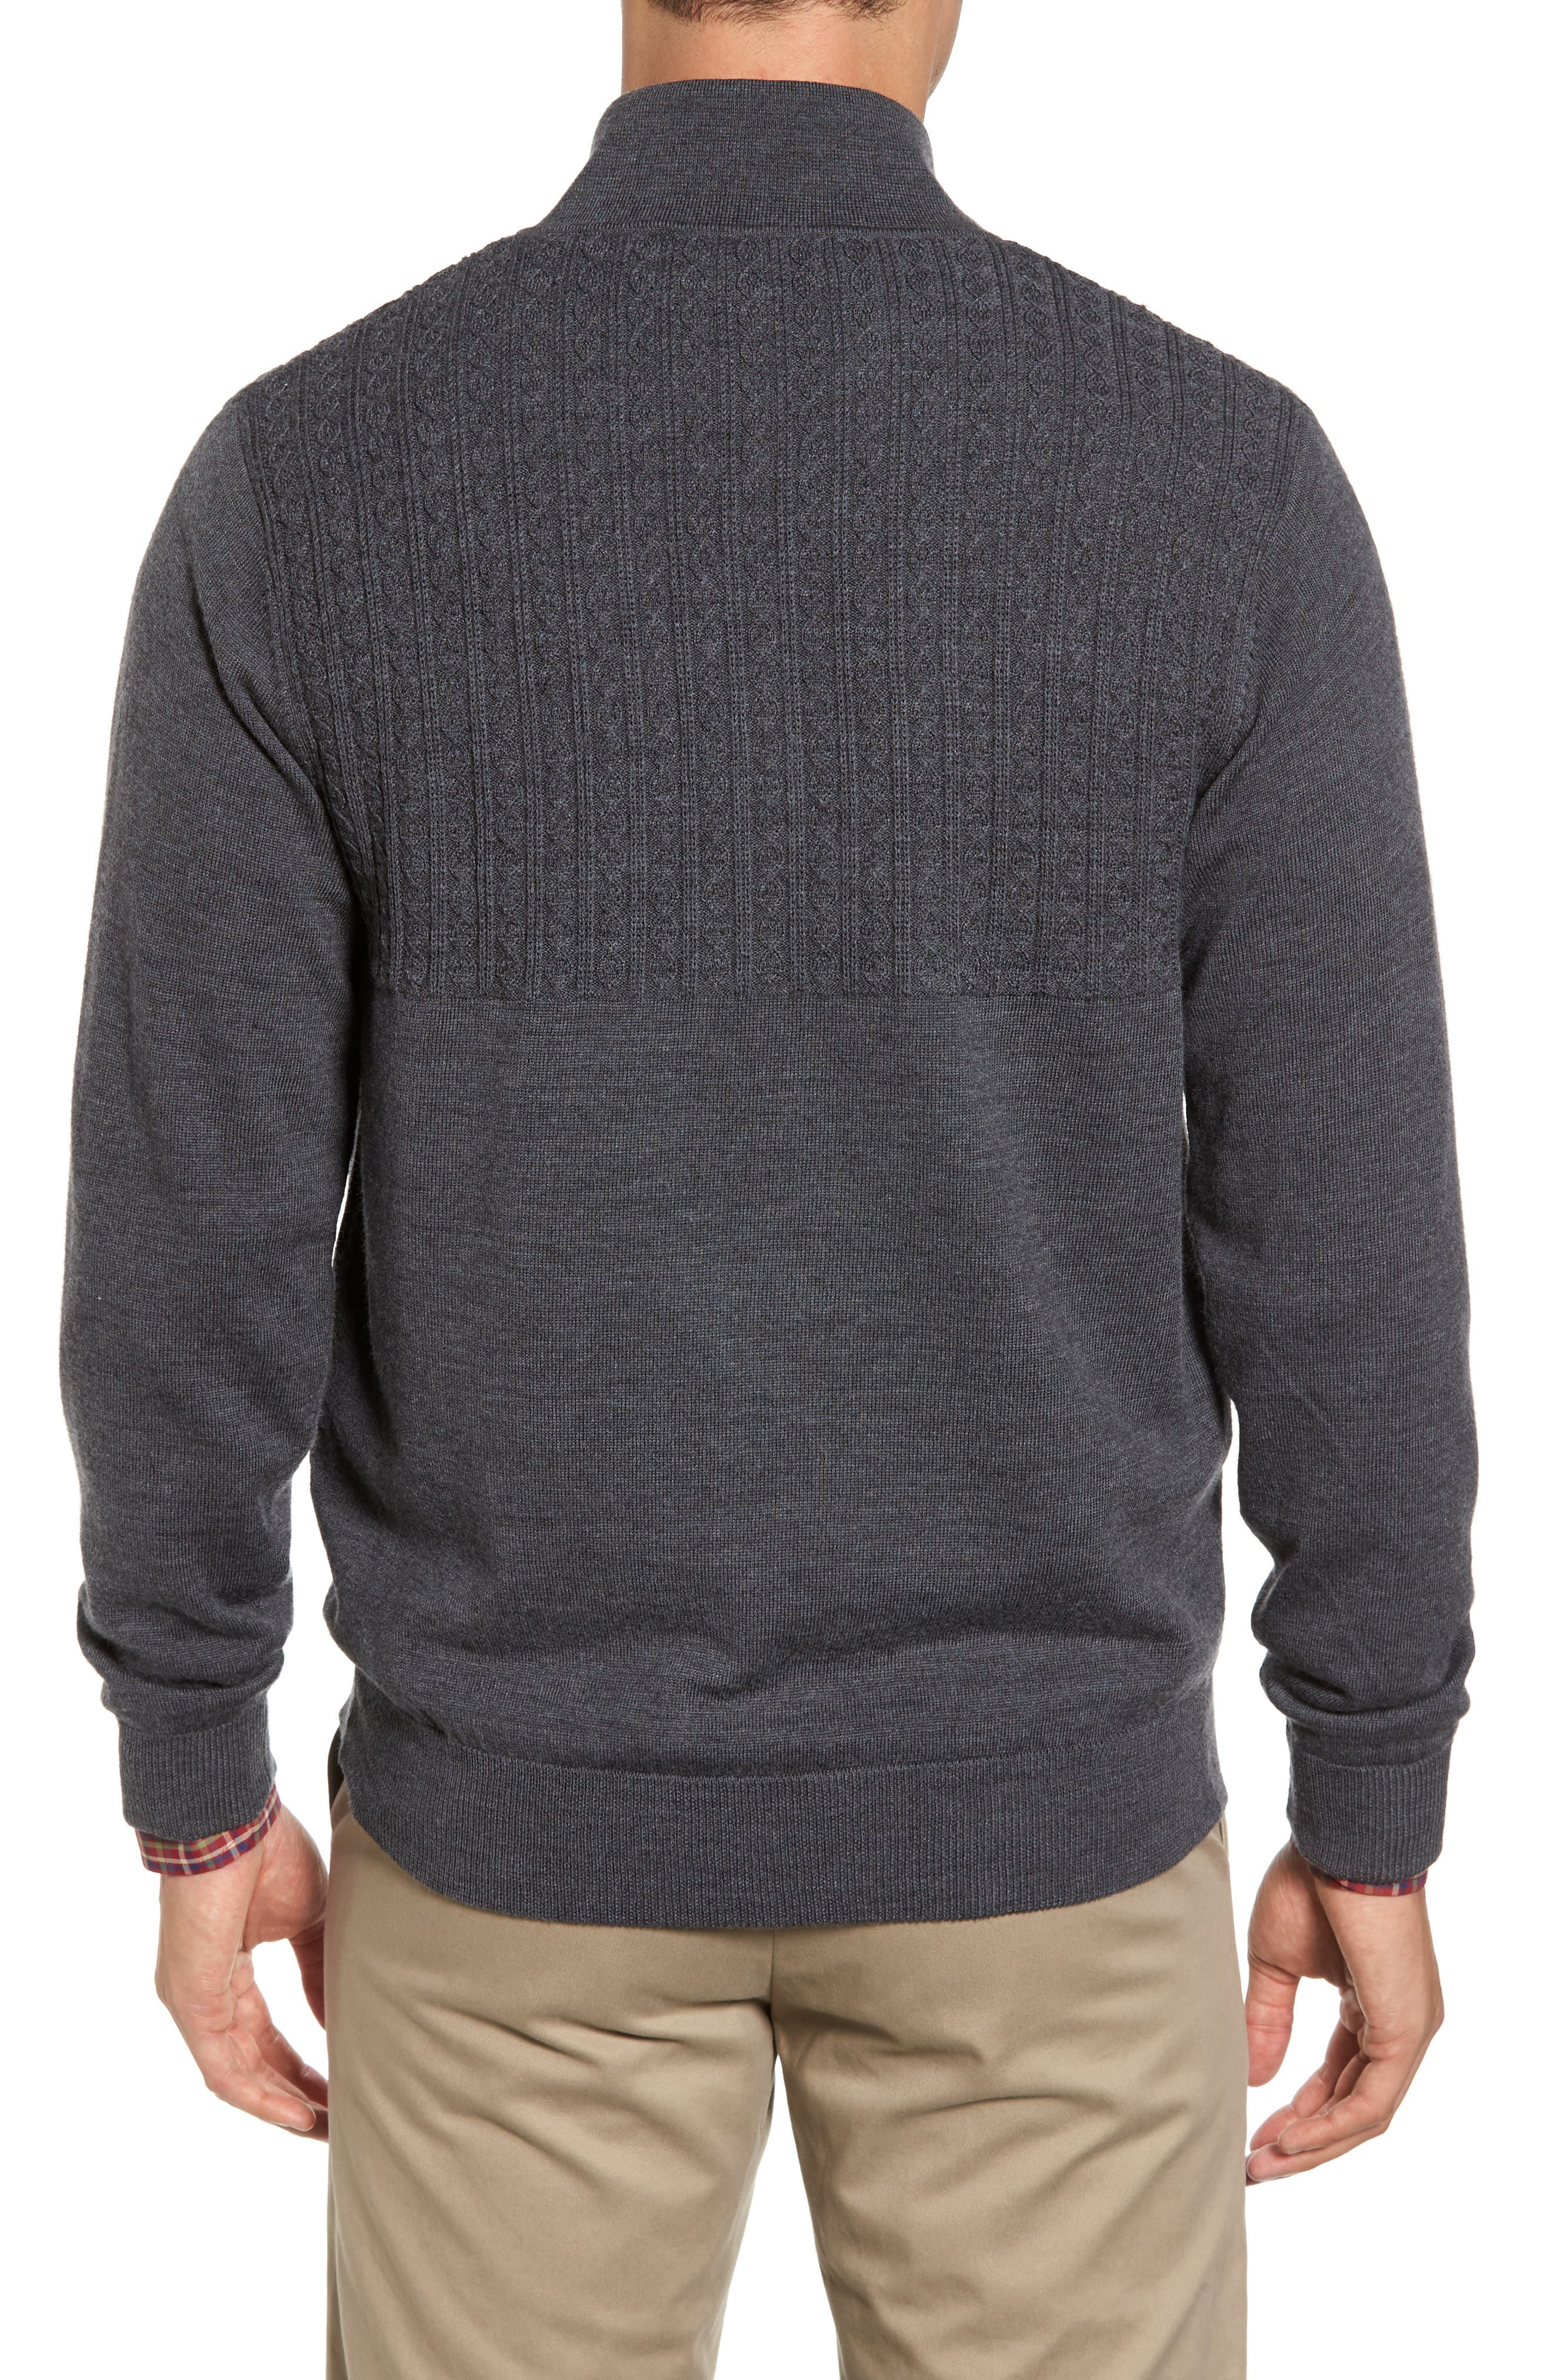 Cable Wind Wool Sweater,                             Alternate thumbnail 2, color,                             020